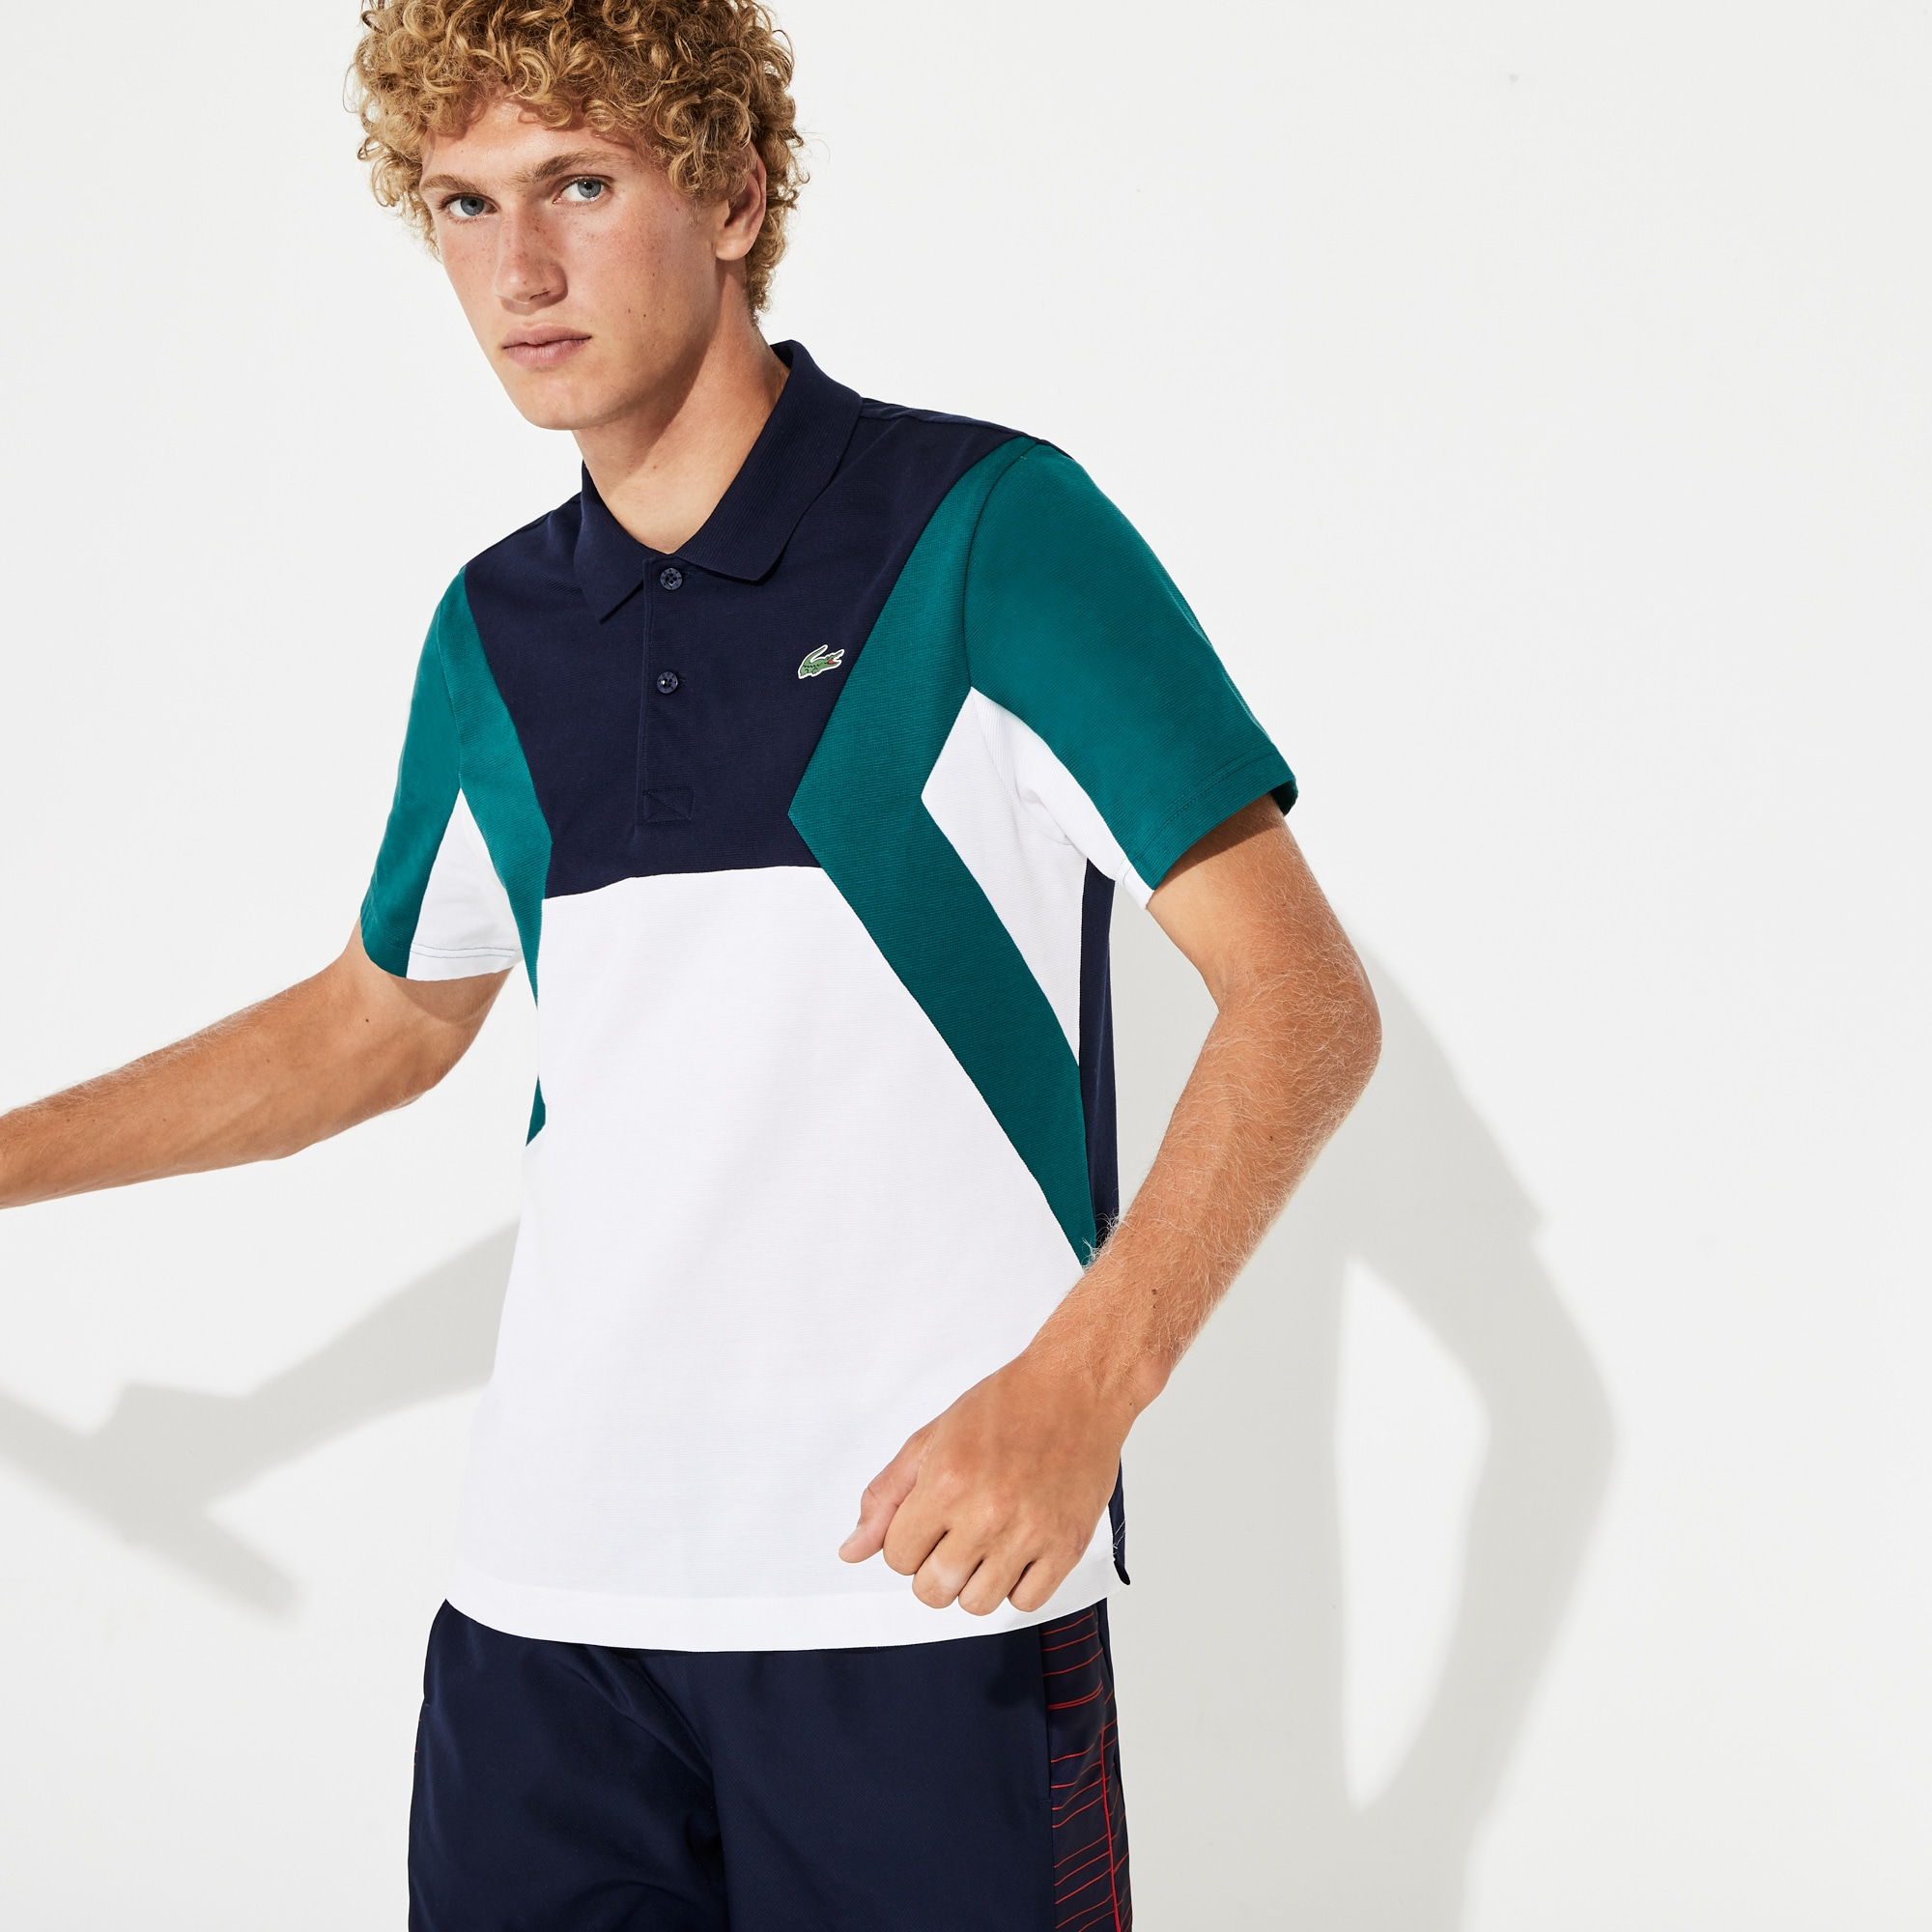 Men's SPORT Ultra-Lightweight Color-Blocked Cotton Tennis Polo Shirt